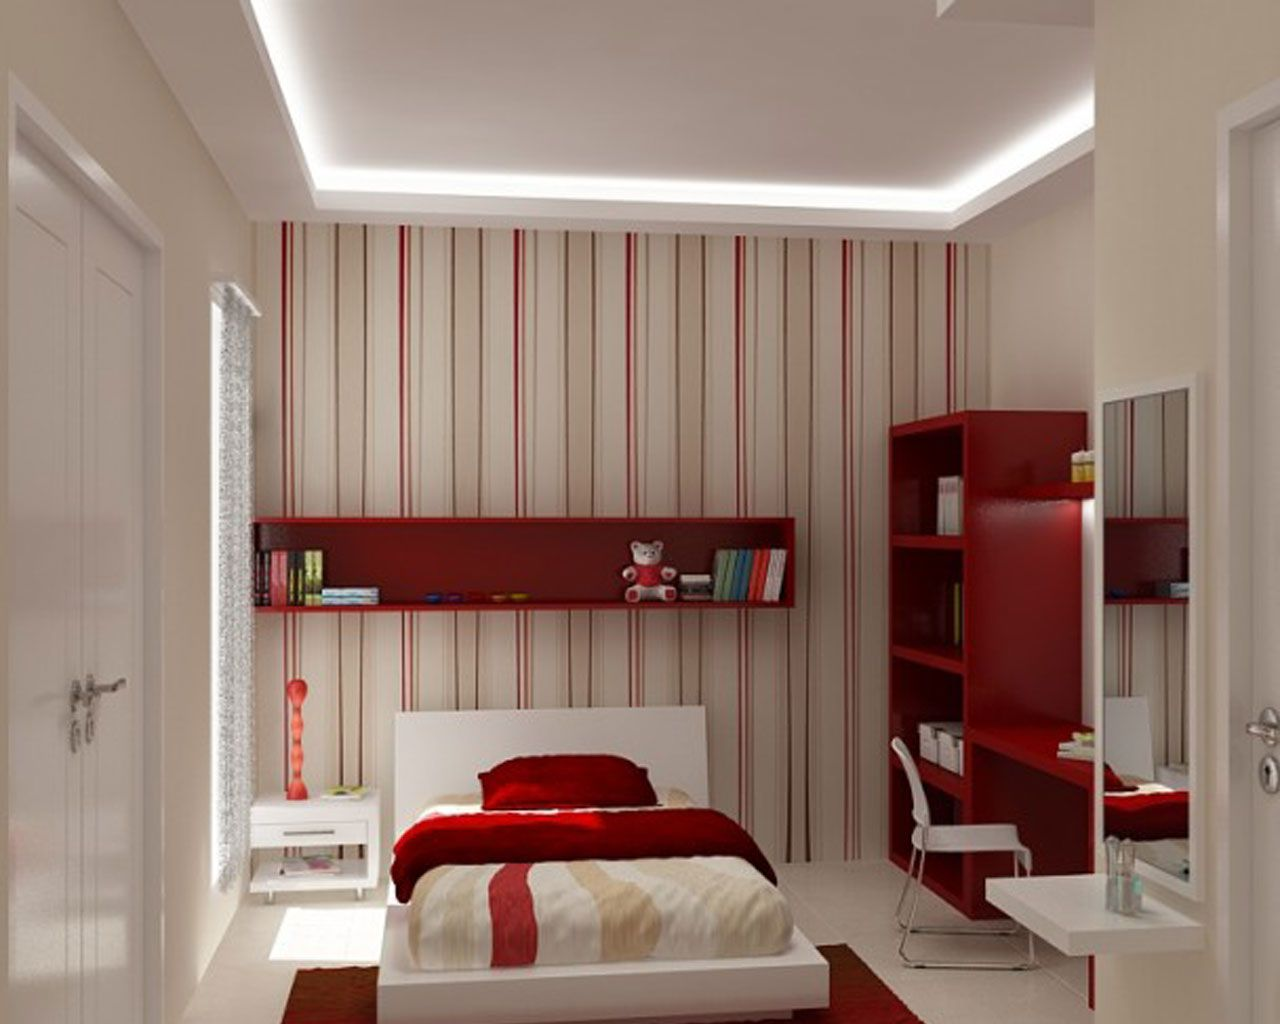 interior design of a house - 1000+ images about house on Pinterest Singapore, Interior photo ...